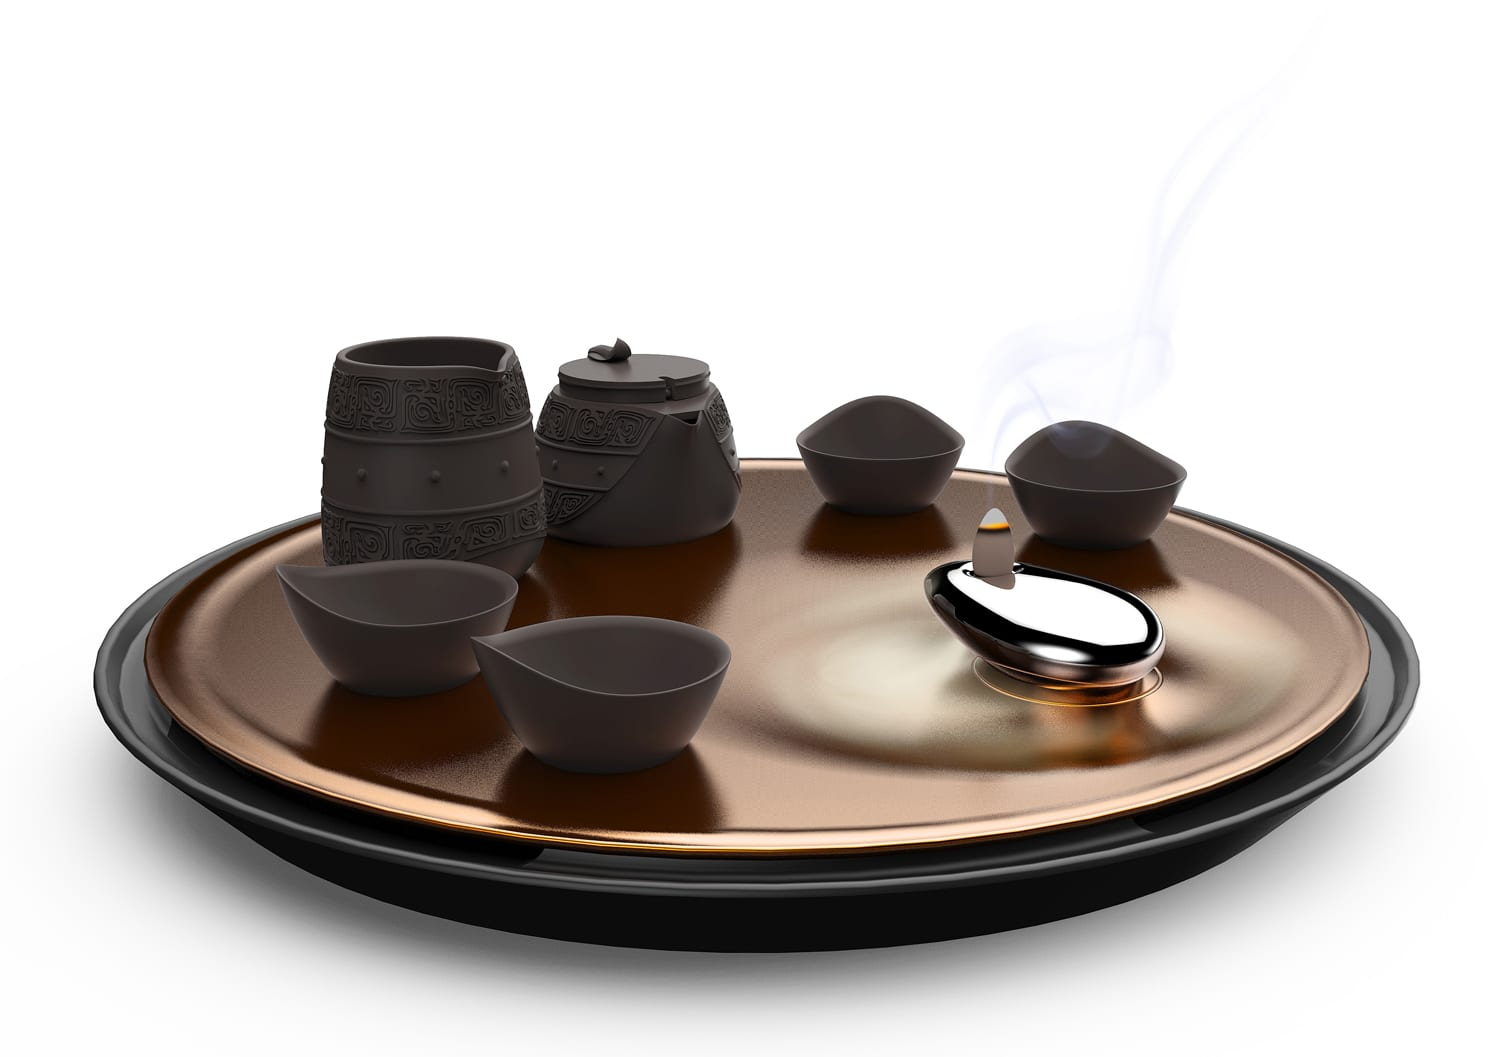 Eternity On The Desert Tea Set by Mutuopia at Salone Satellite Shanghai 2017 | Yellowtrace